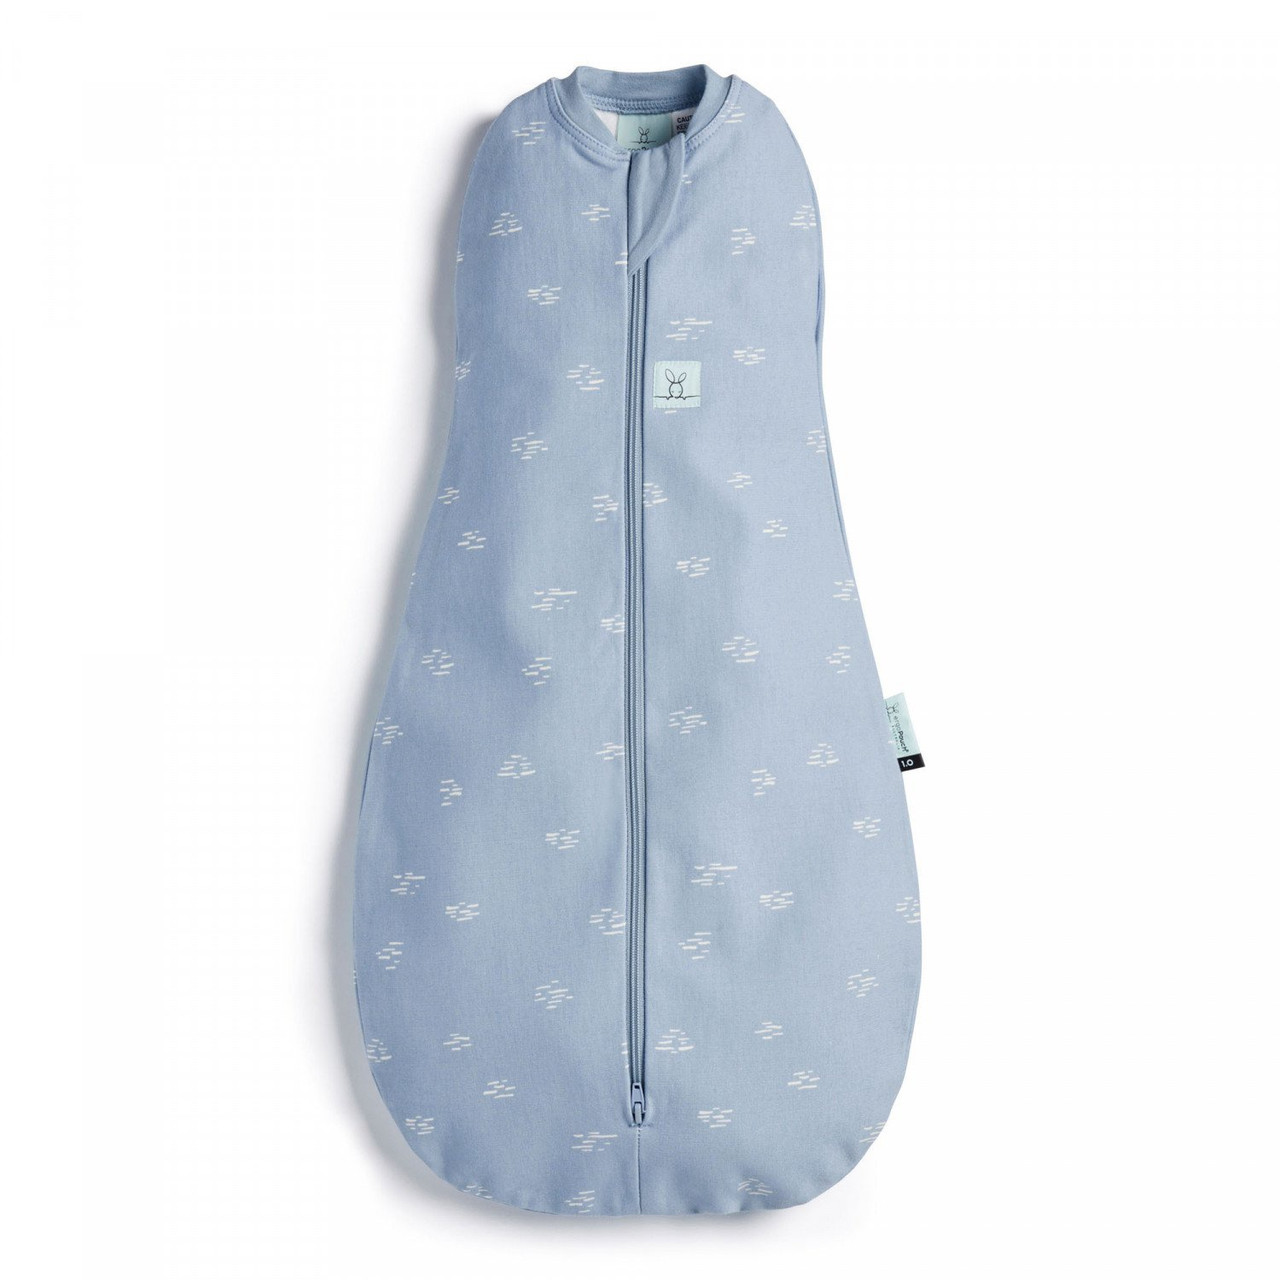 Ergopouch Cocoon Swaddle Bag 1.0 tog 6-12 Months RIPPLE at Baby Barn Discounts ErgoPouch cocoon 1.0 tog is an escape-proof swaddle which converts to a sleeping bag.